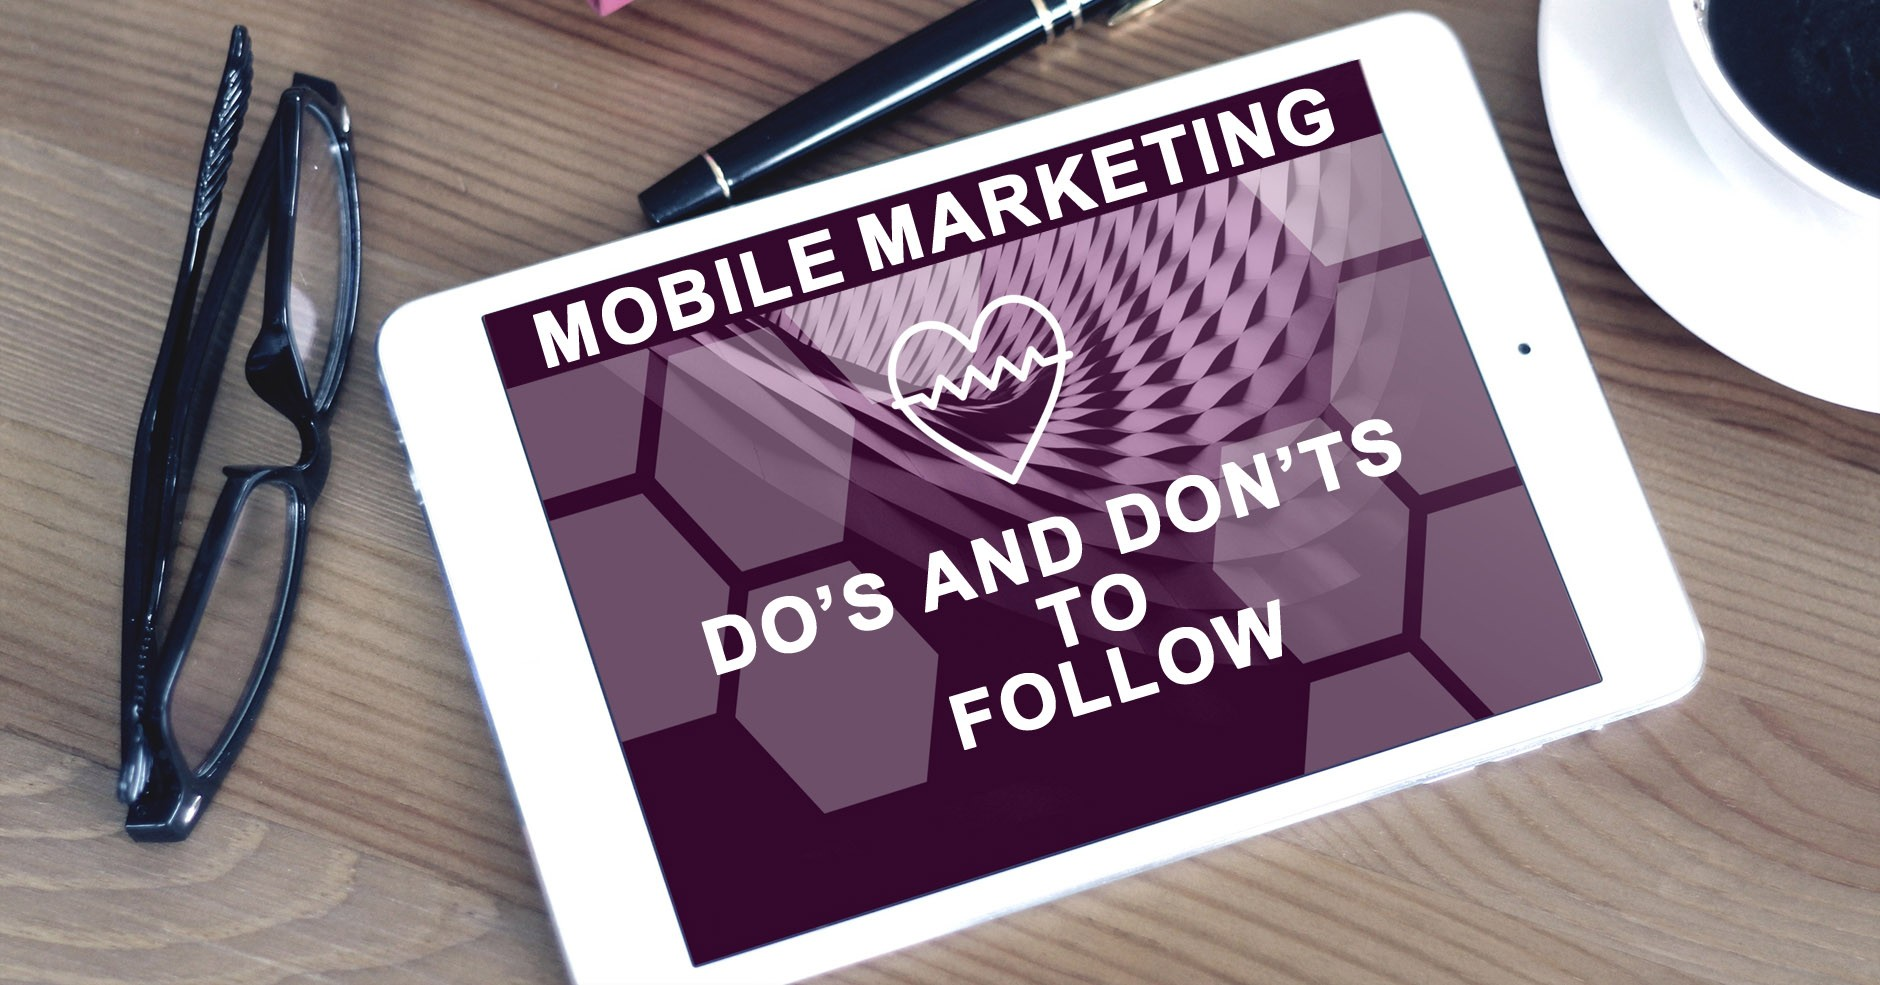 Mobile Marketing for Healthcare: Do's and Don'ts to Follow